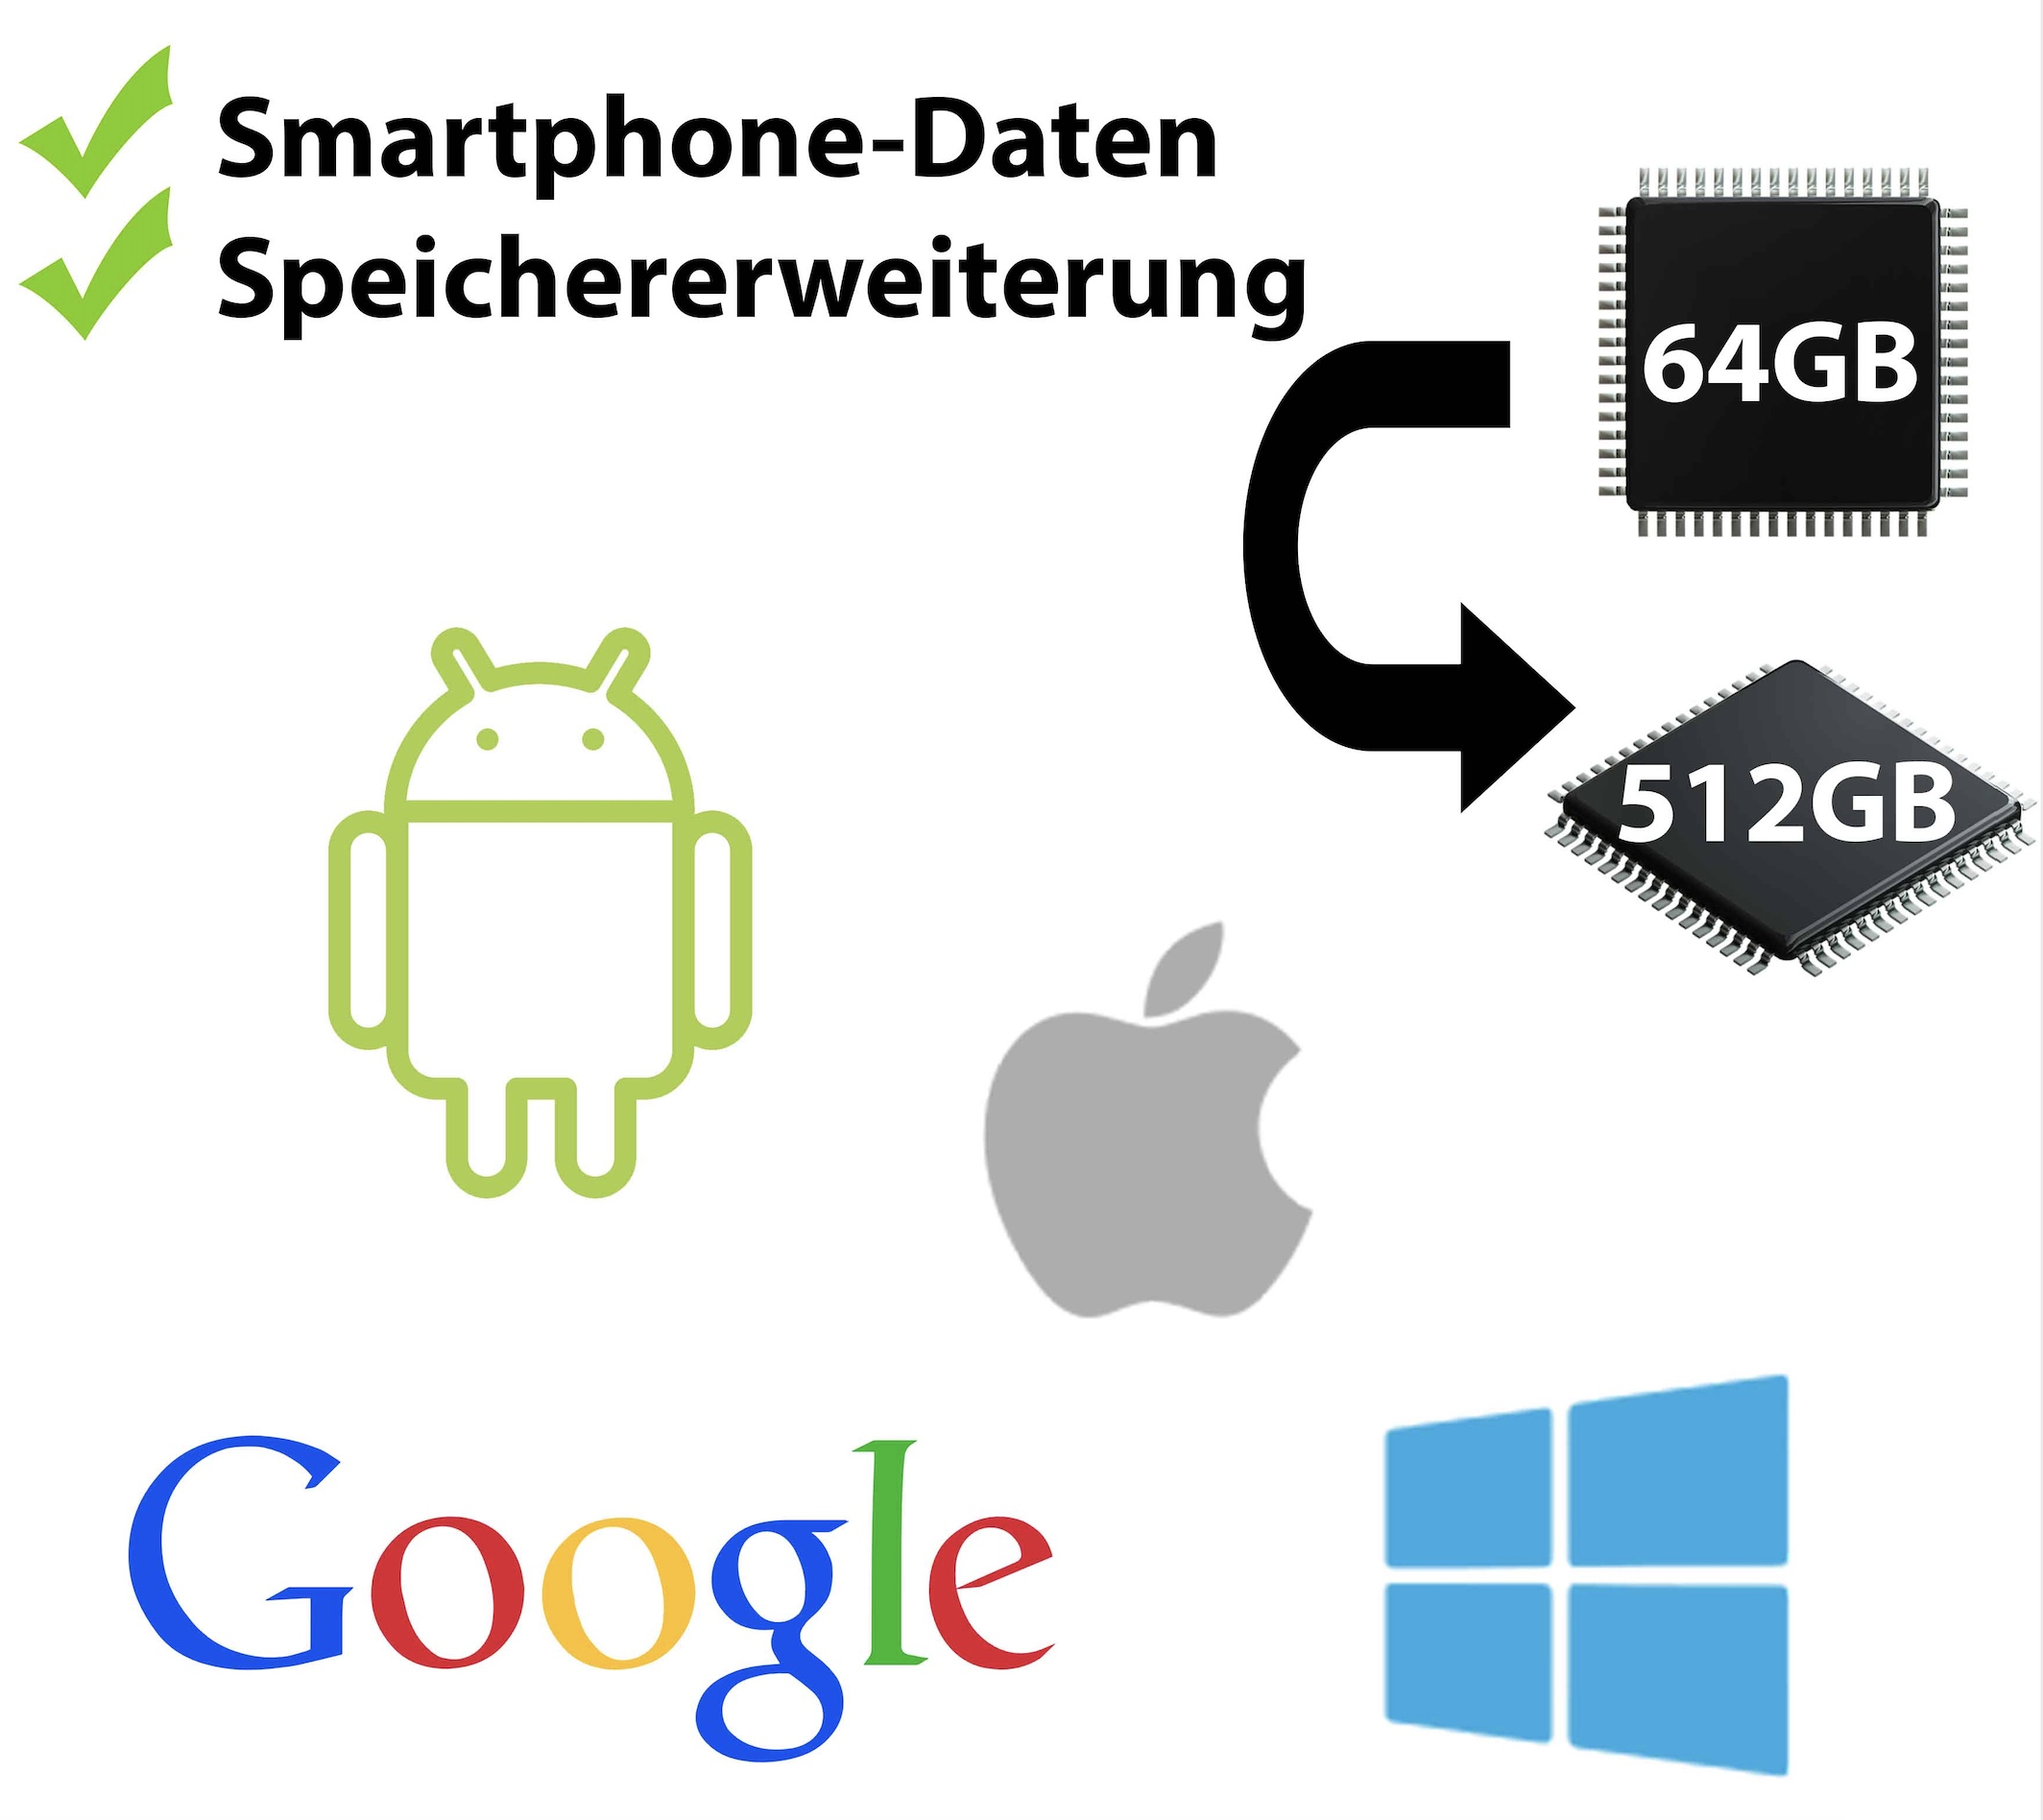 Handy-tablets-laptops-i-watch-datenrettung-displayreparatur-wasserschaden-an-verkauf-smartphone-reparatur-Pankow-Mühlenberg-Center-201